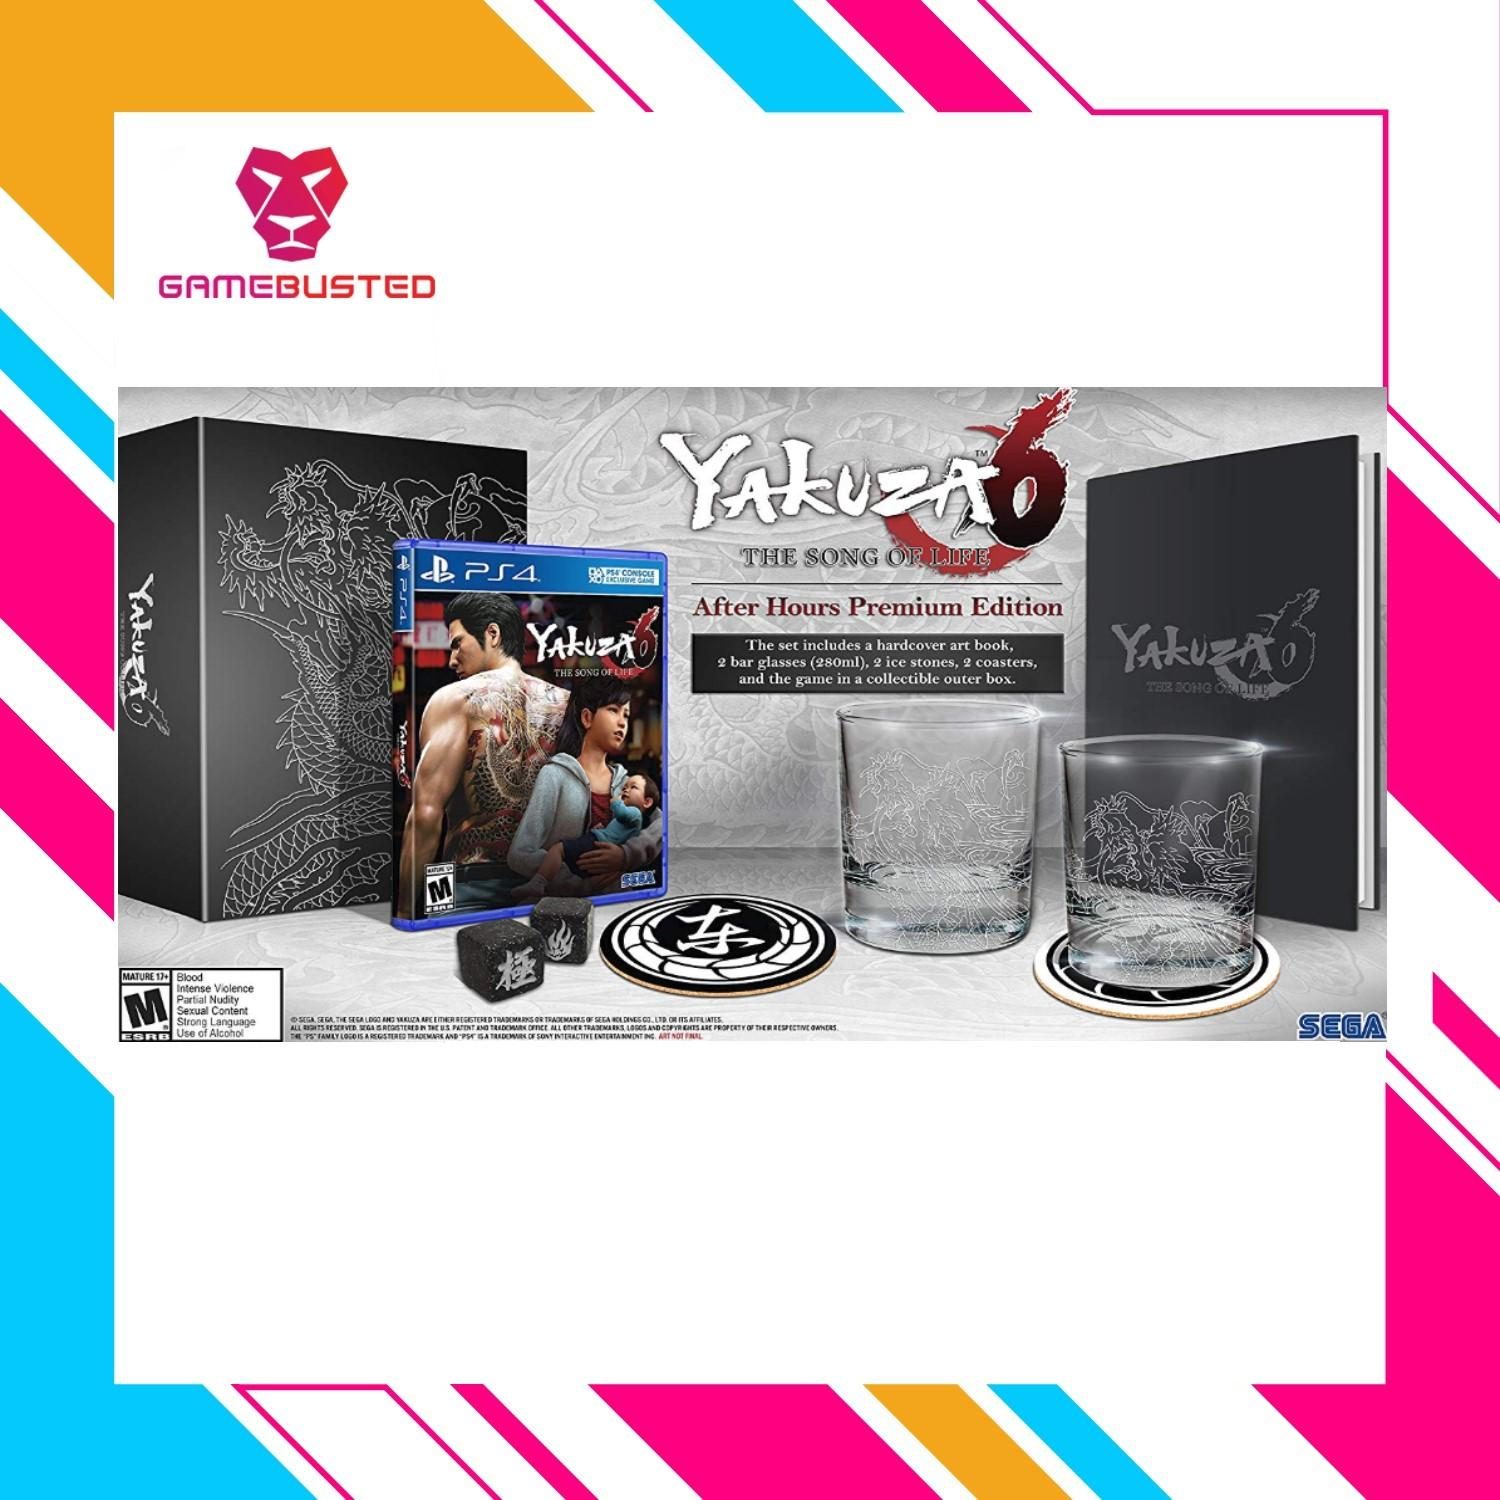 Buy Sell Cheapest Yakuza 6 Best Quality Product Deals Singapore Sony Ps4 0 Zero R1 The Song Of Life After Hour Premium Edition All